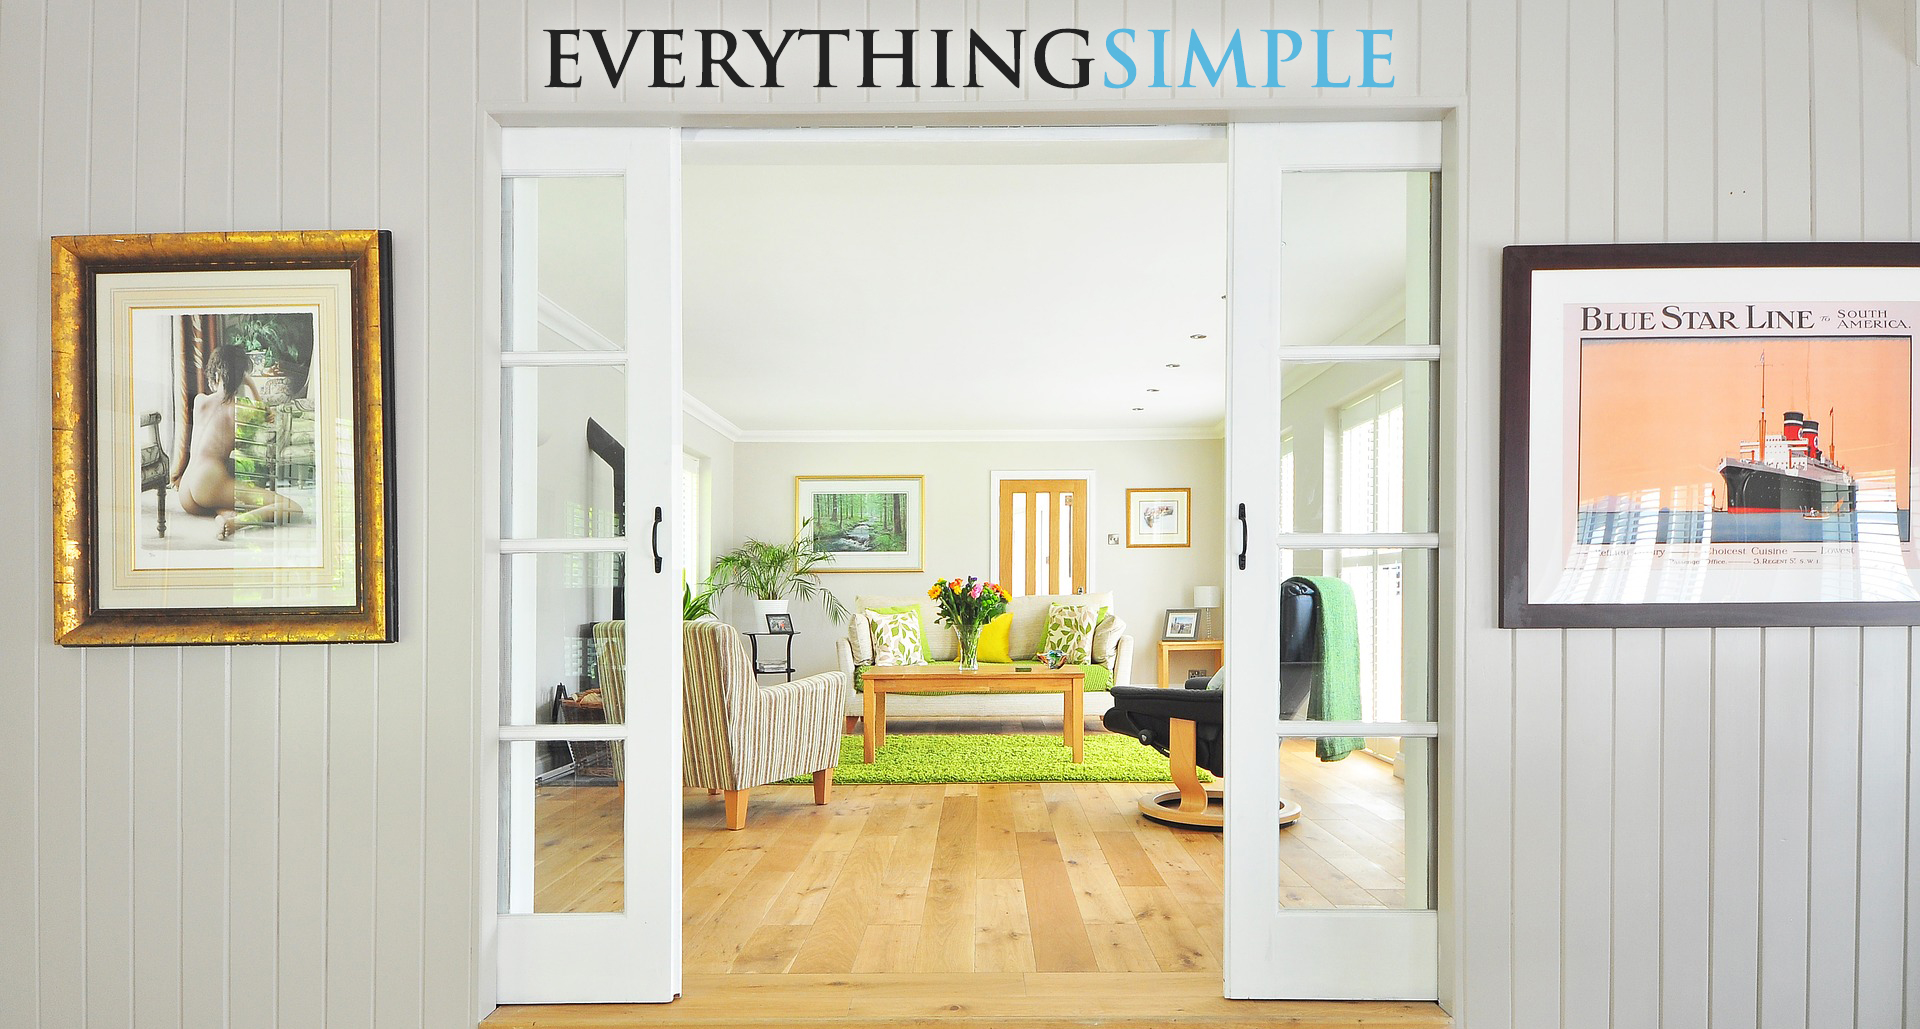 About Everything Simple - Home Decor Reviews and Recommendations